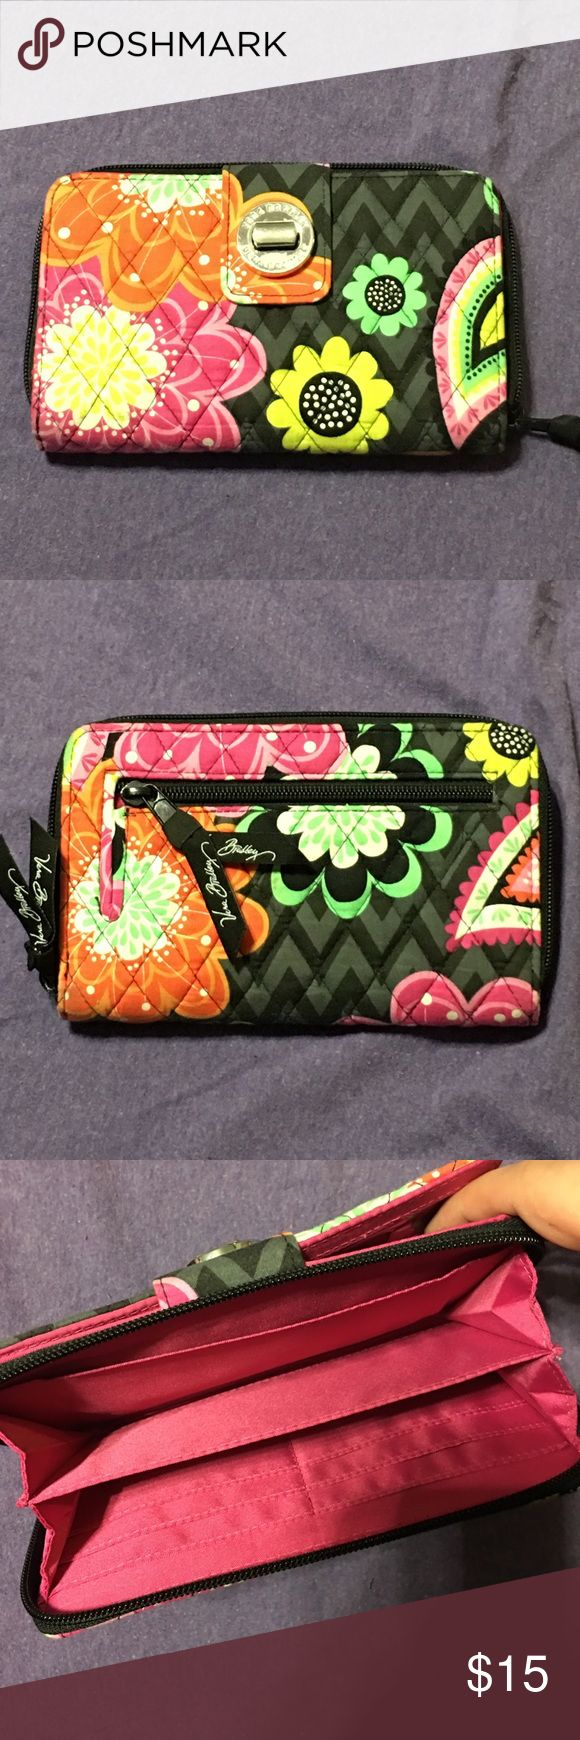 Vera Bradley Wallet! Cute Black and Floral Vera Bradley Wallet! GUC! Small barely noticeable stain on the back of wallet (as noted in picture). Would easily wash out! Vera Bradley Bags Wallets